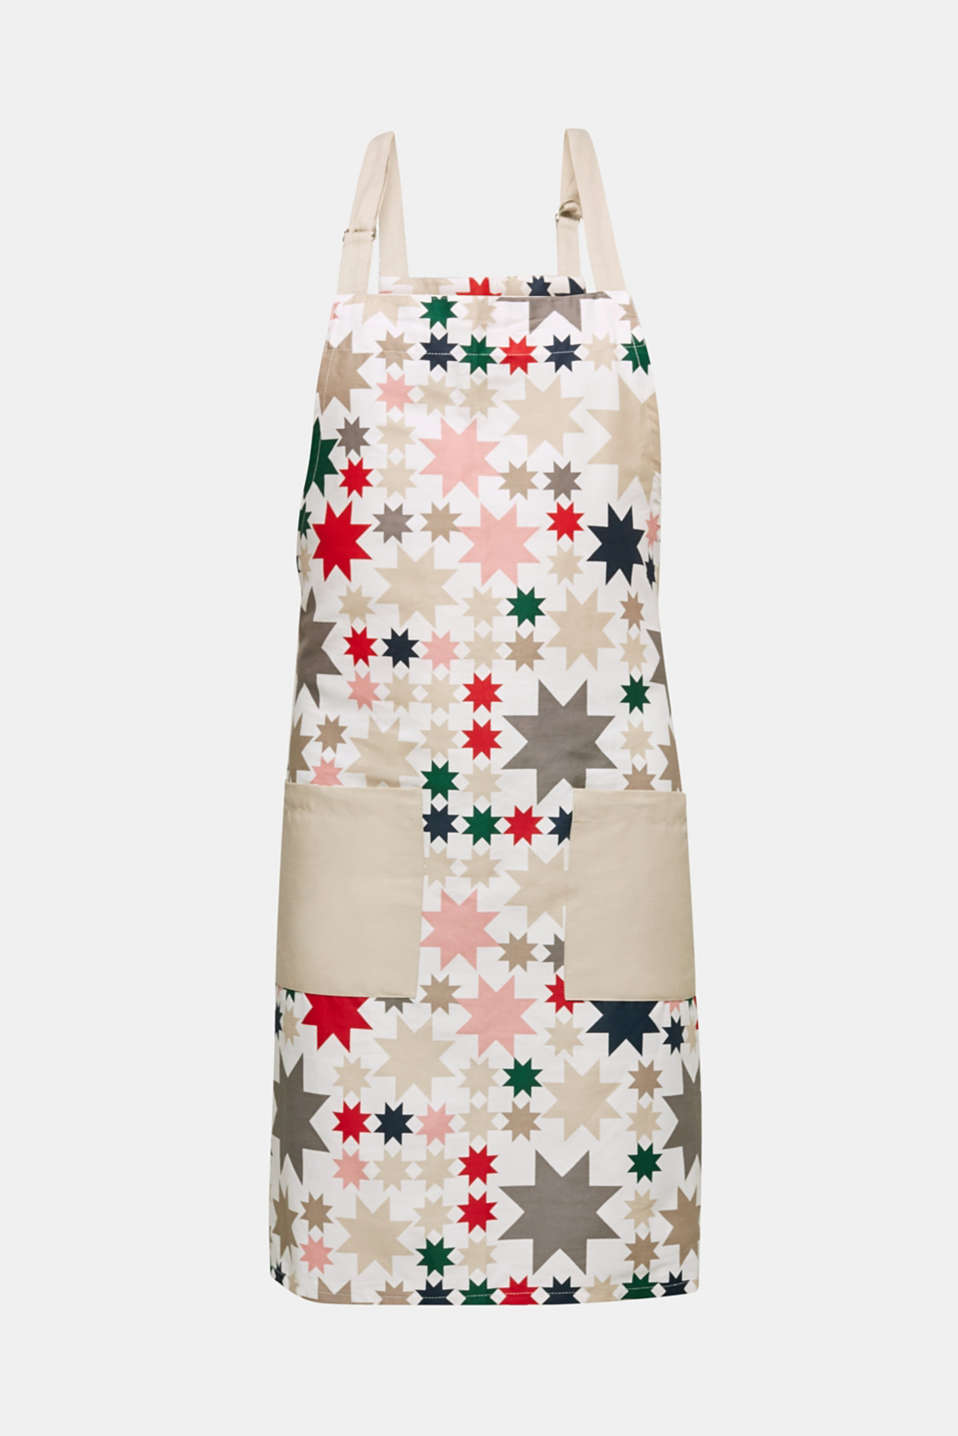 Esprit - Apron with an X-mas print, 100% cotton